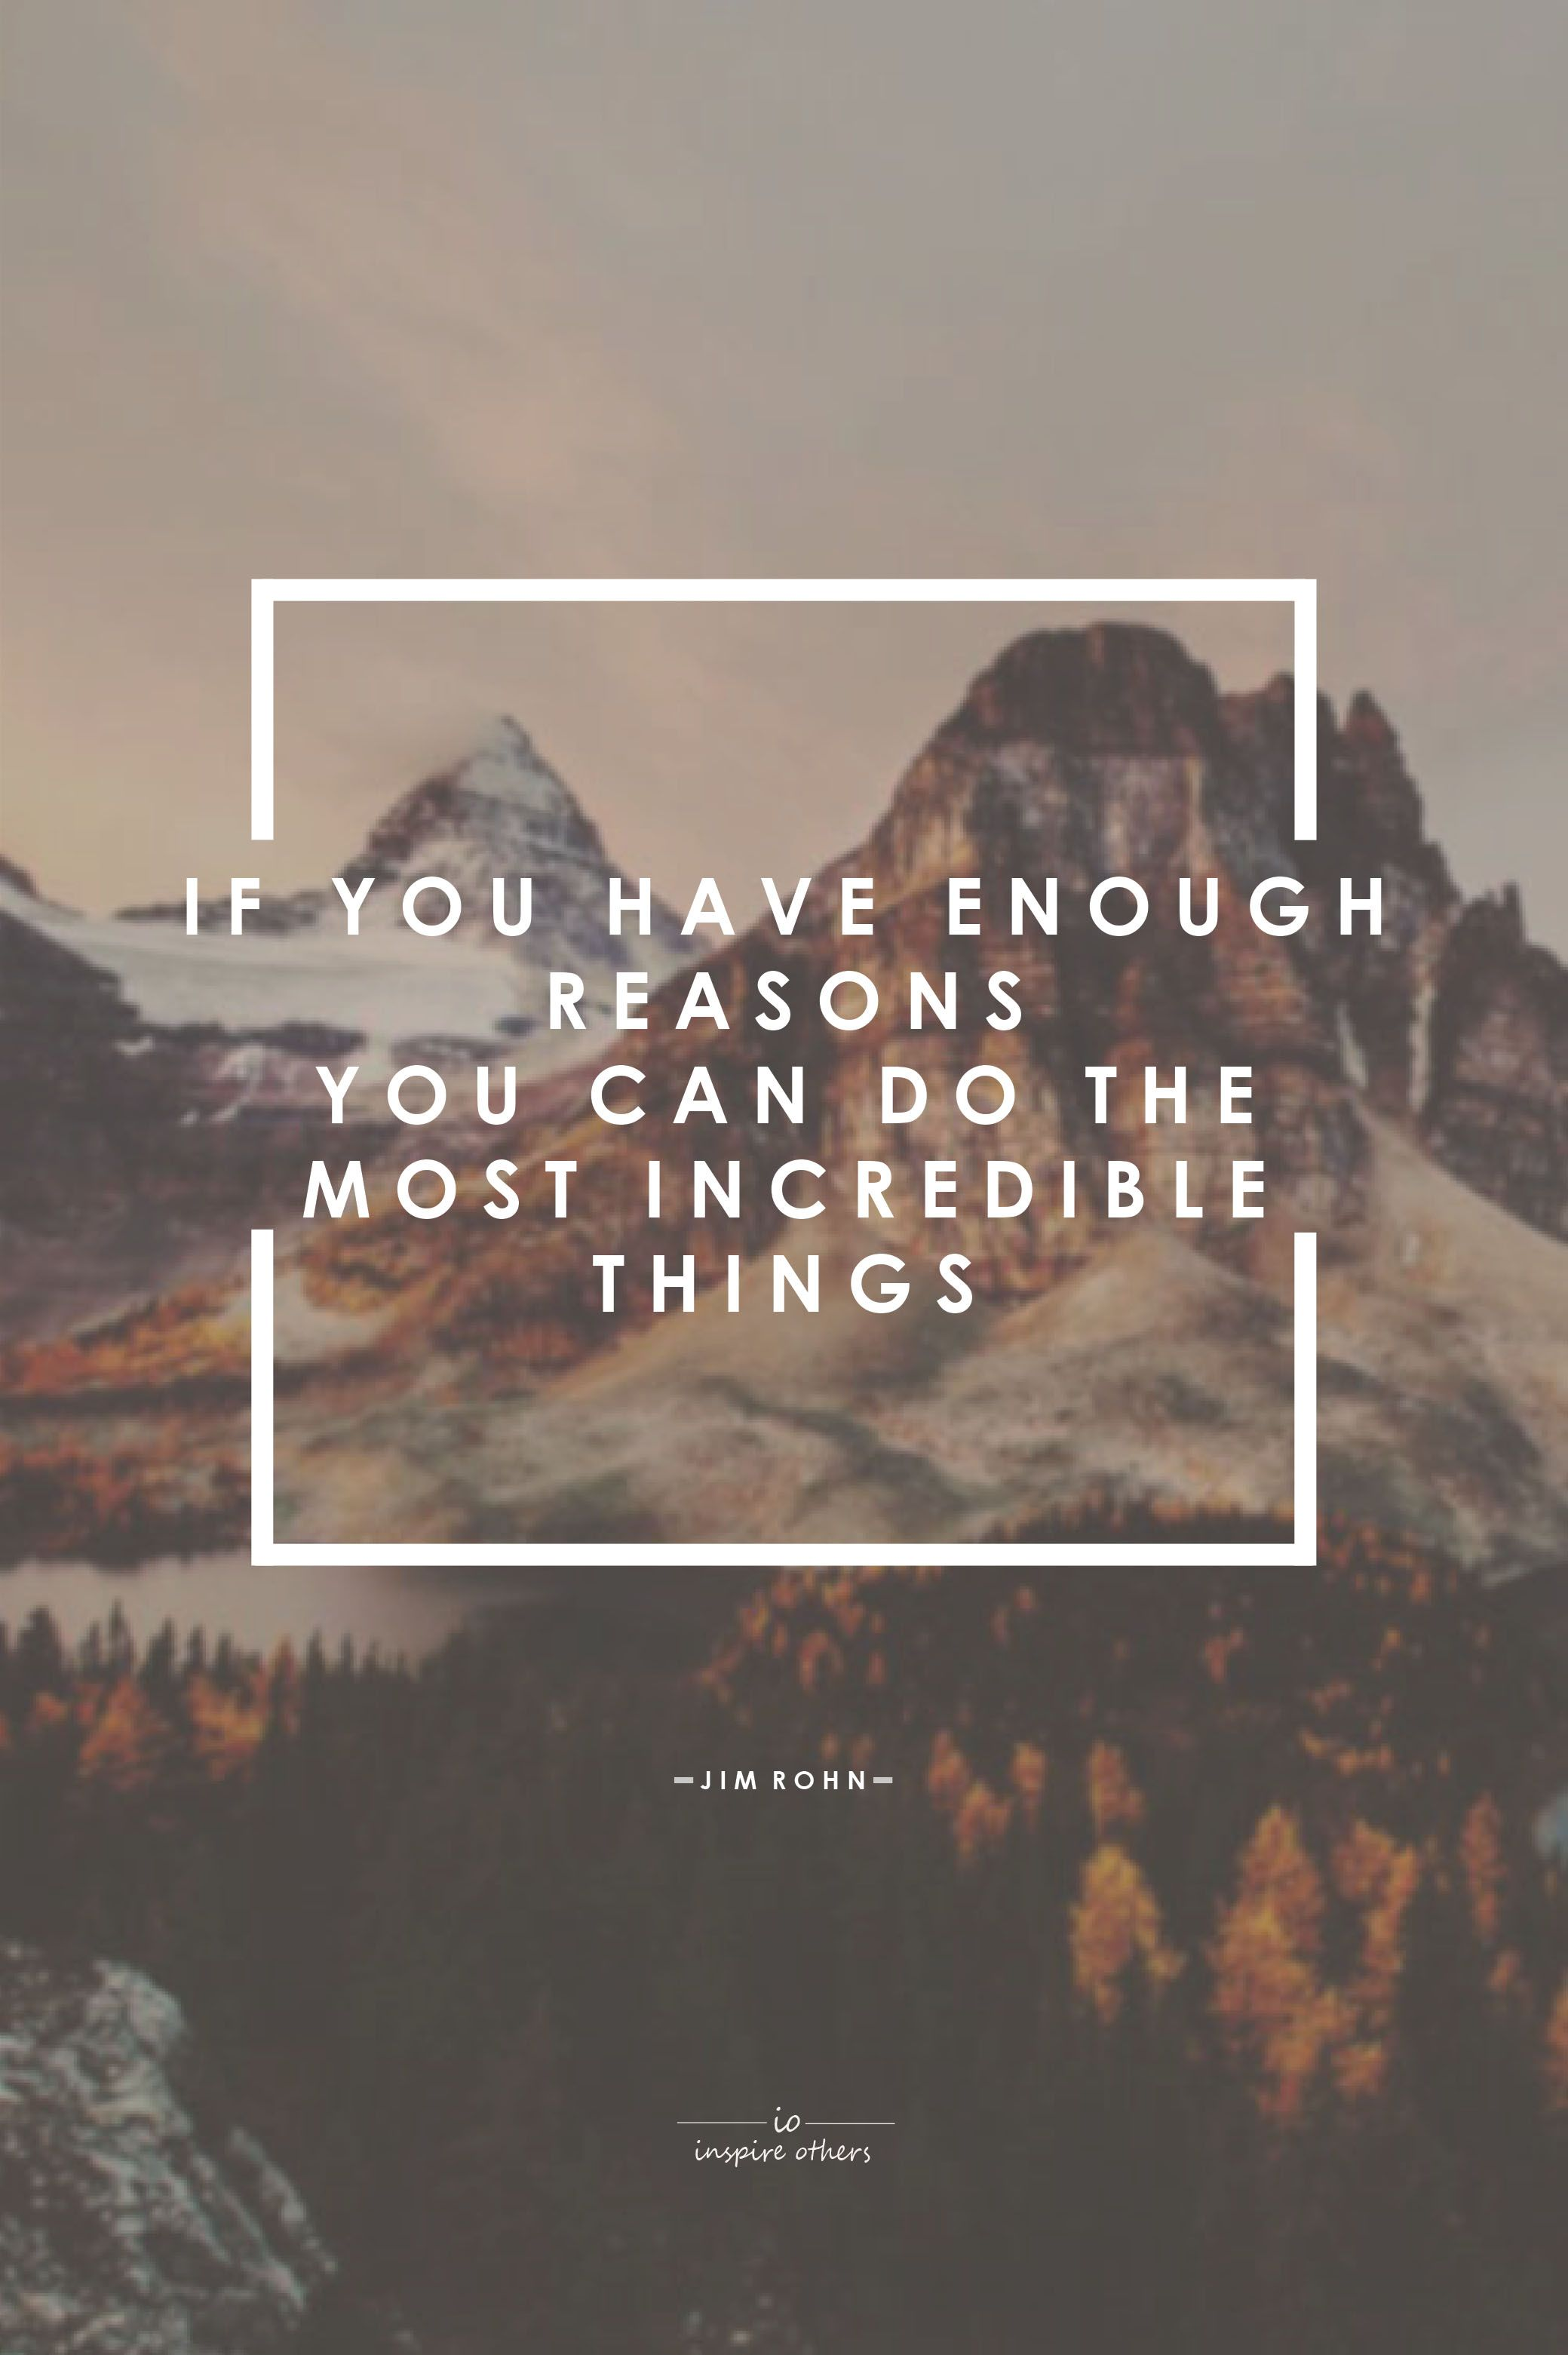 """""""If you have enough reasons, you can do the most incredible things."""" - Jim Rohn - #io #inspireothers #2016"""